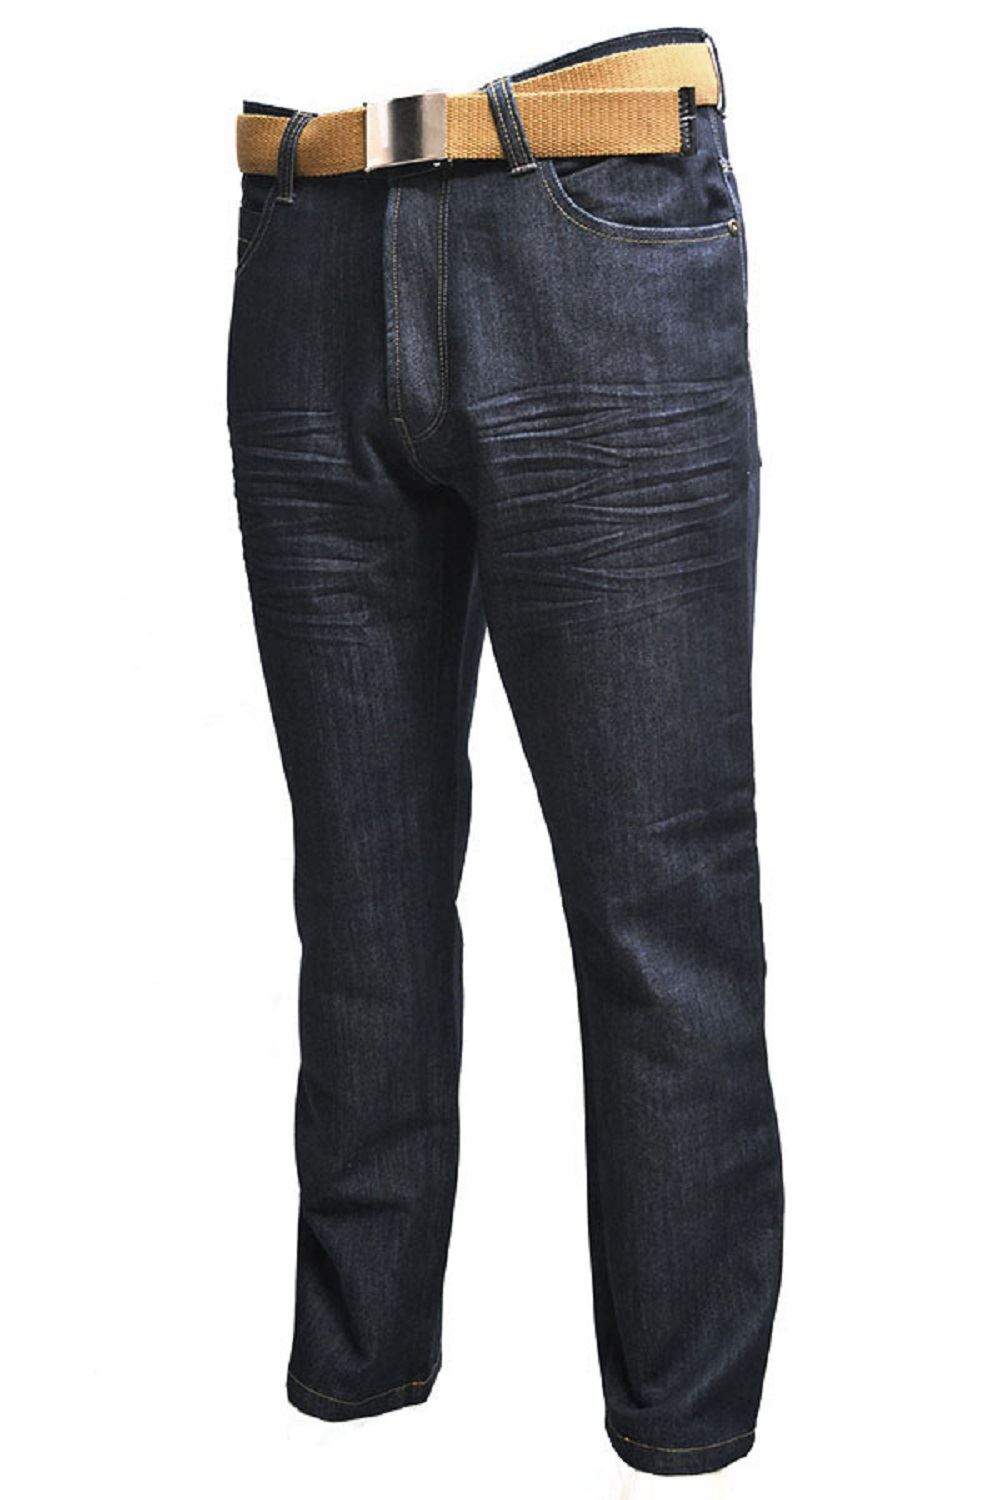 Mens-Classic-Fit-Black-Indigo-Jeans-Kori-By-Creon-Previs thumbnail 10